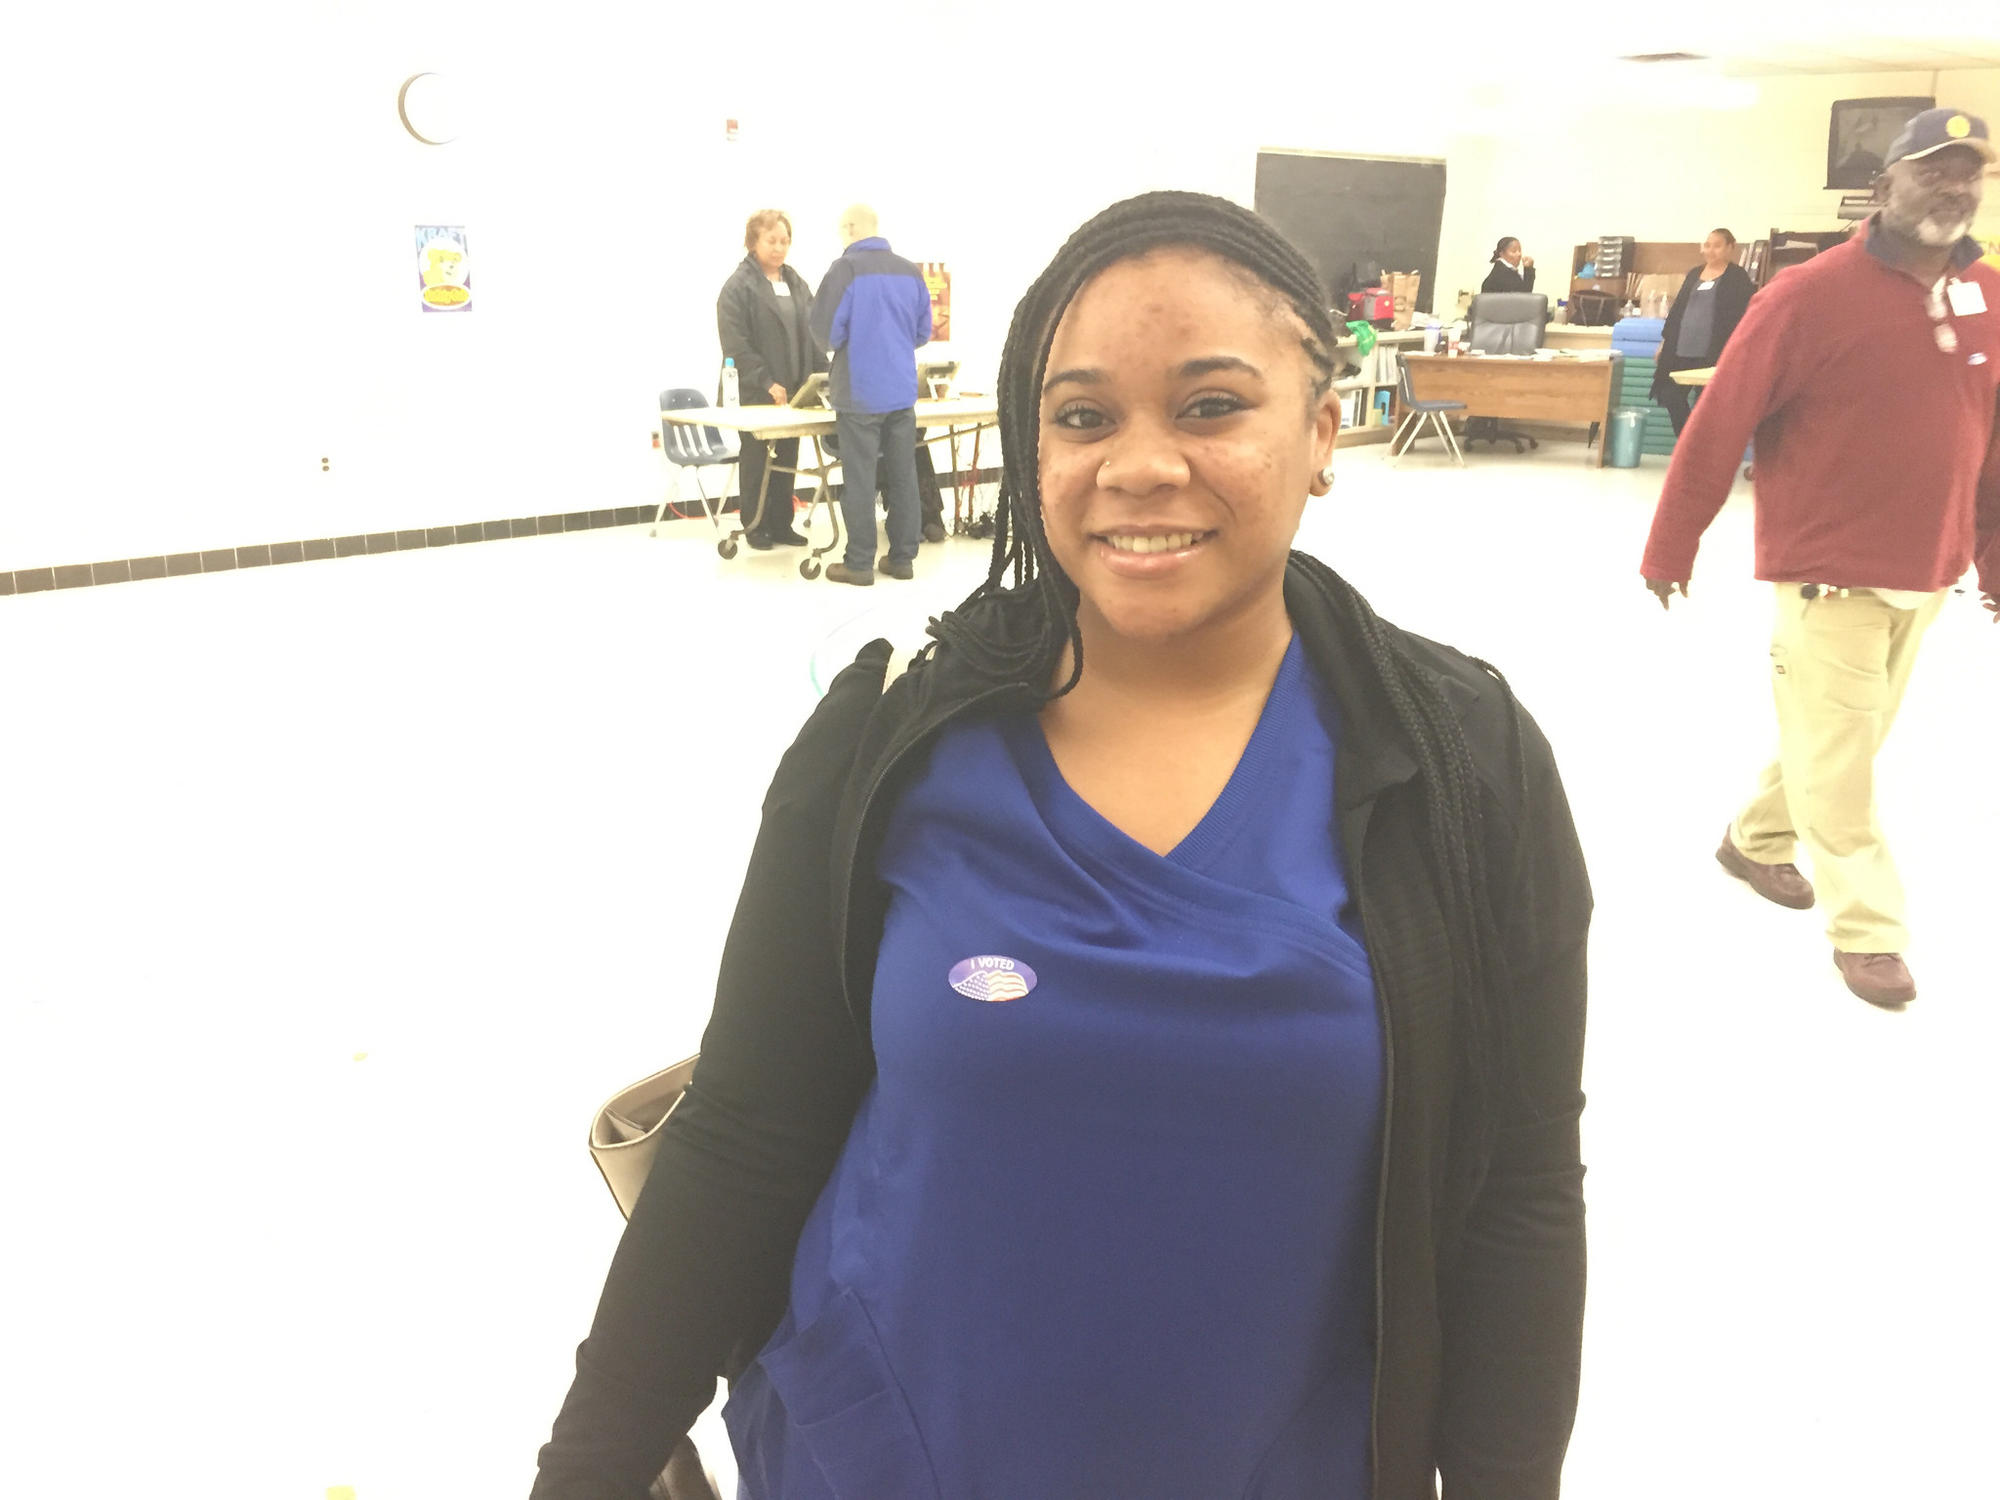 Mickayla Jones, 24, voted for the first time in her life at the Kraft precinct in Hampton Tuesday.